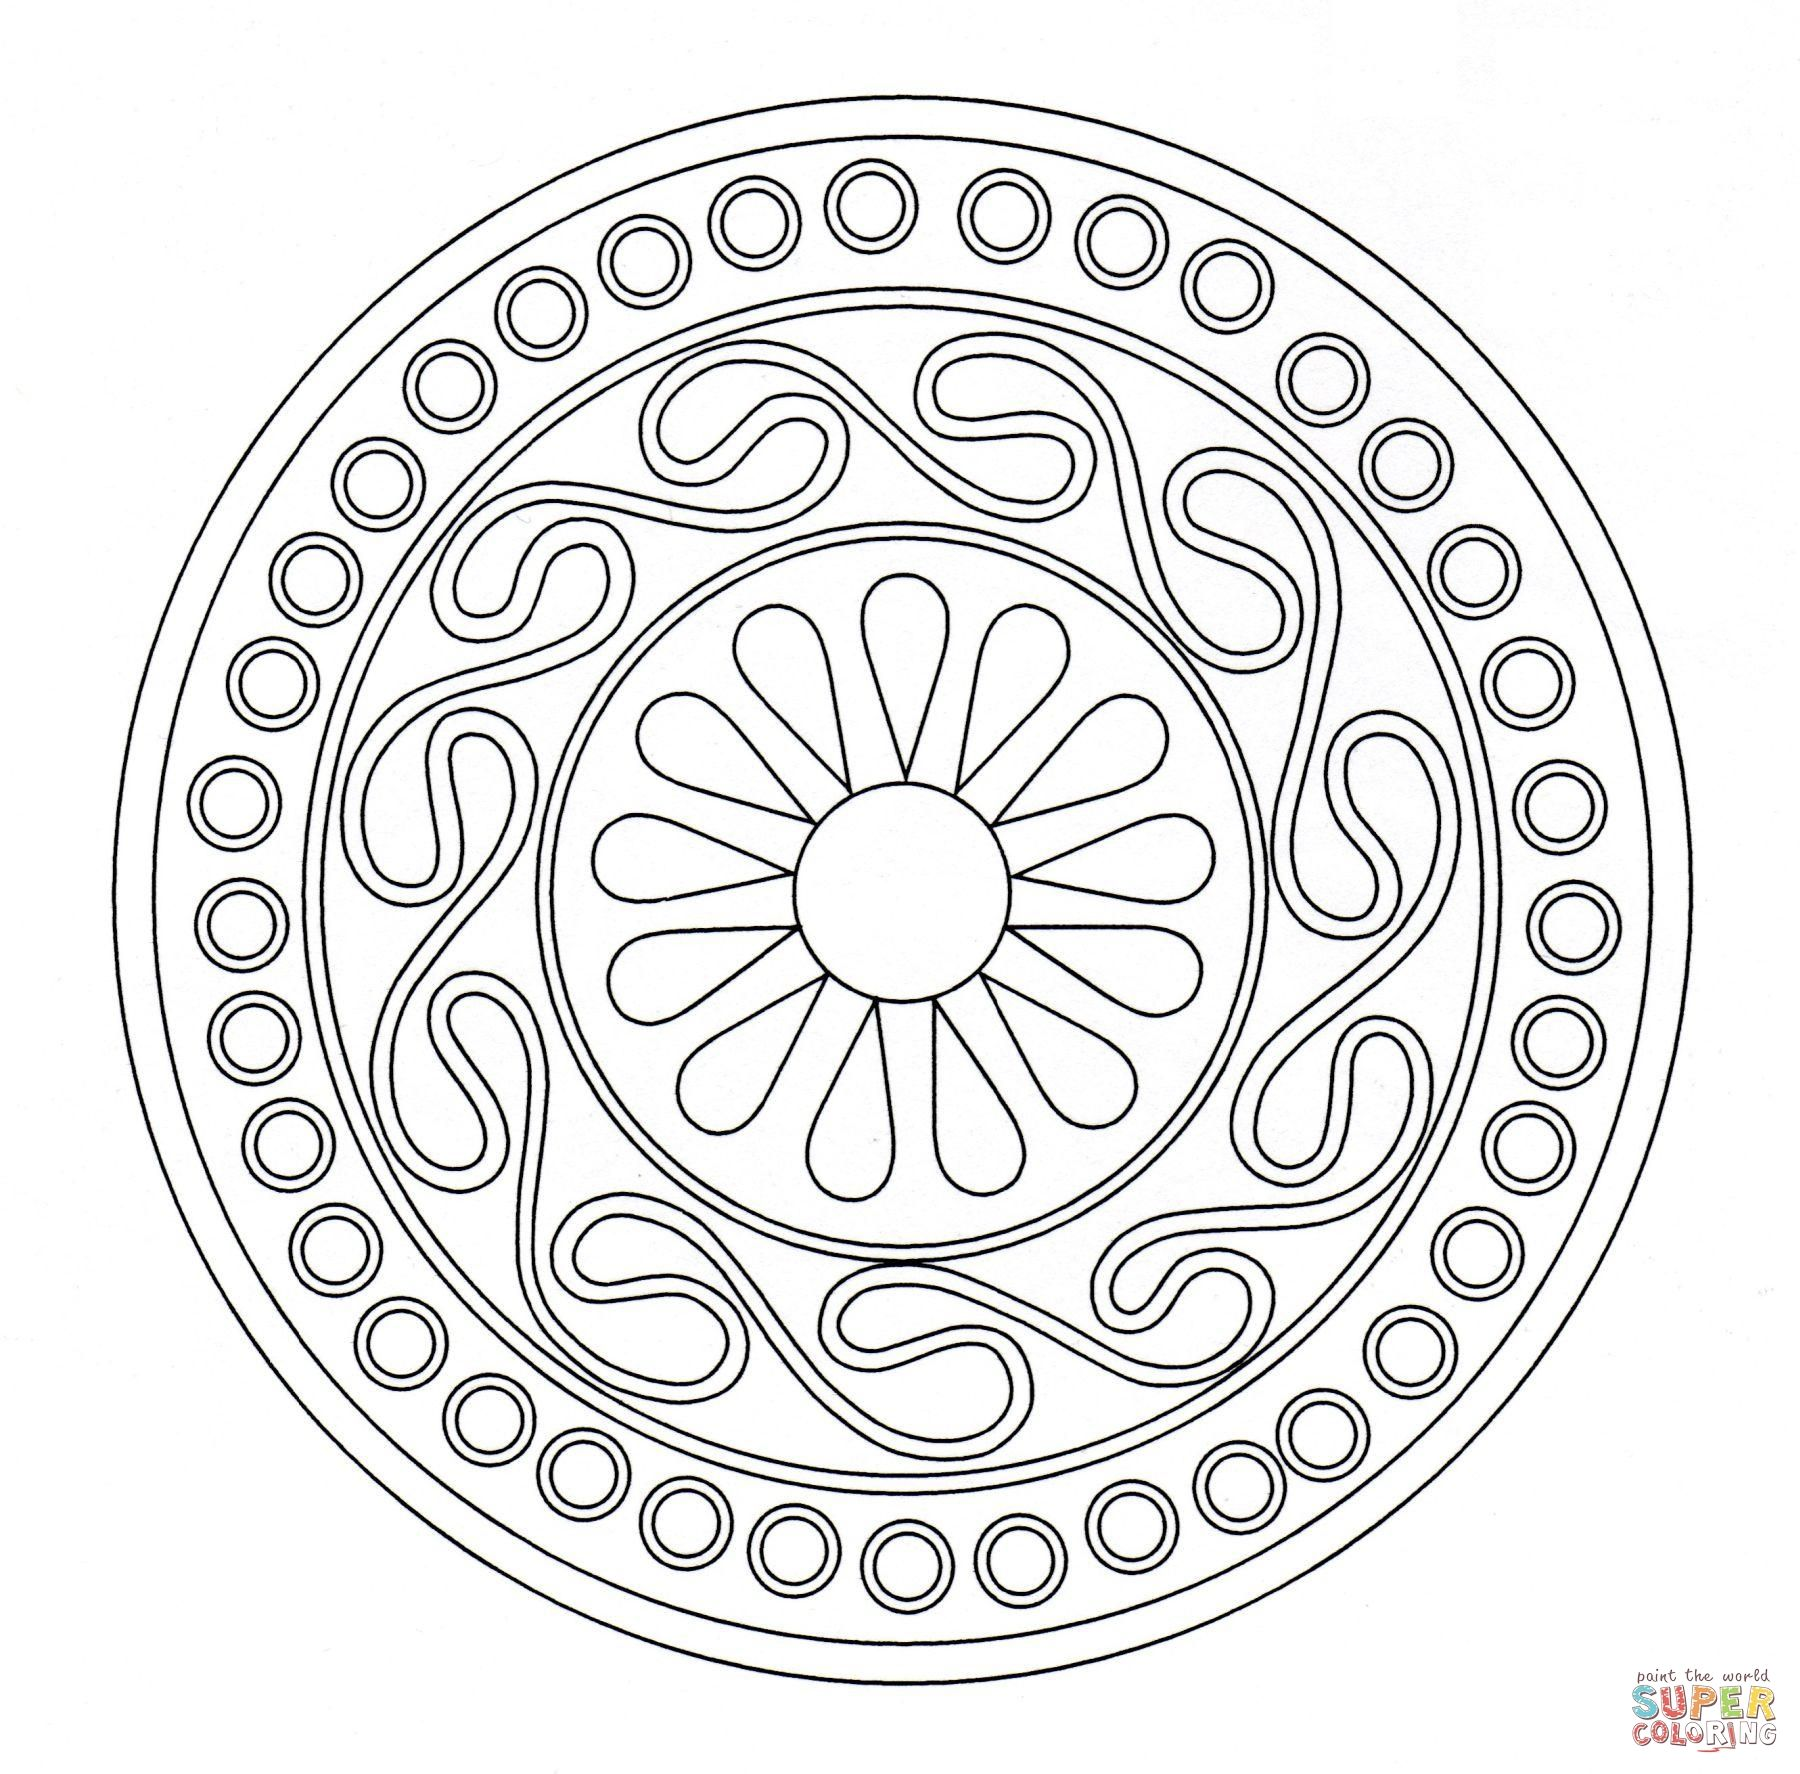 celtic ornament coloring page from celtic art category select from 20987 printable crafts of cartoons nature animals bible and many more - Free Printable Ornament Coloring Page 2